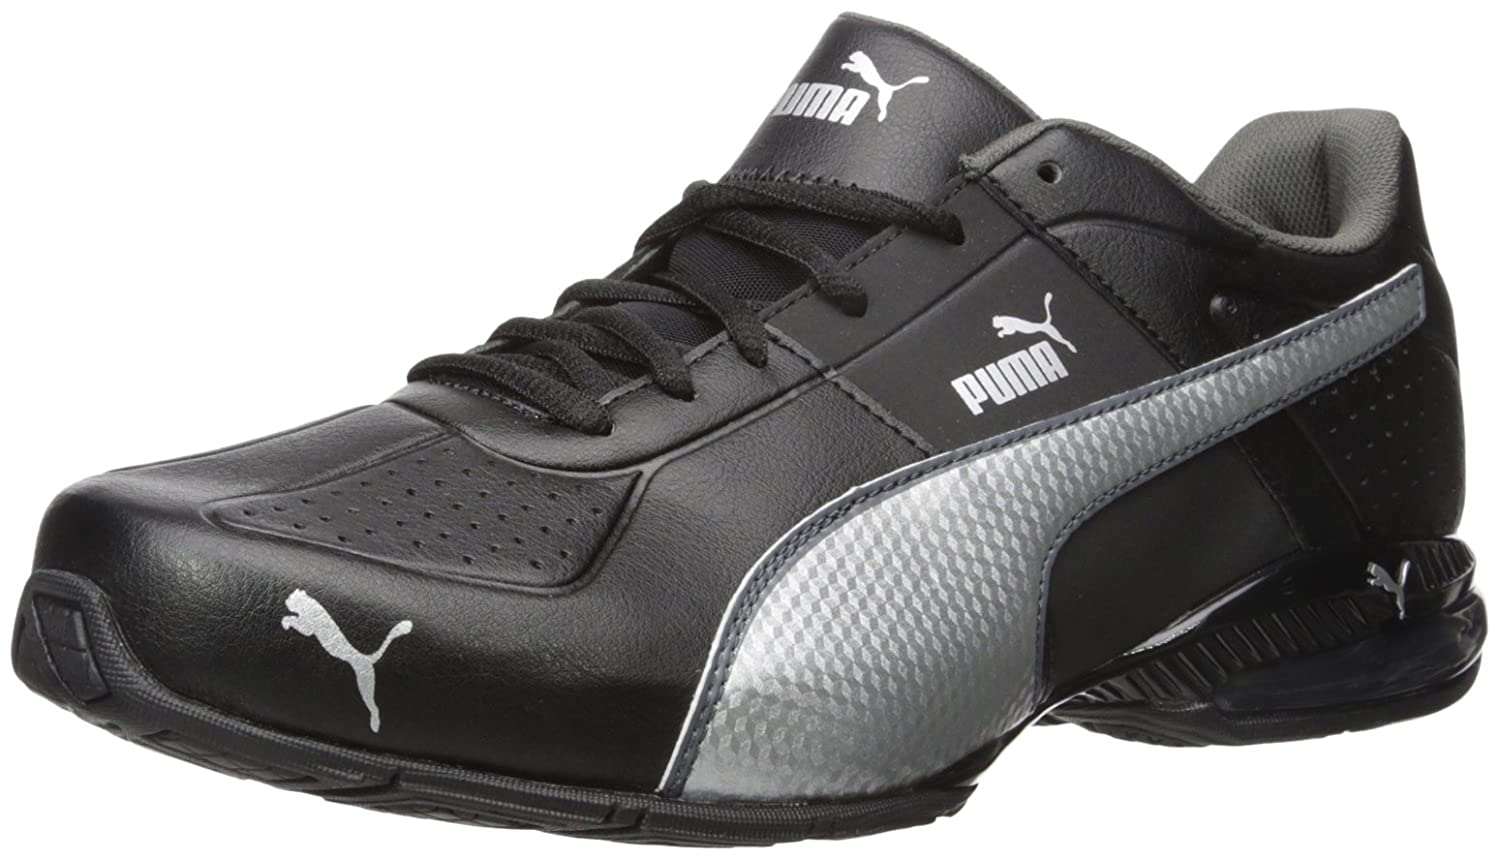 41147b9f08 Amazon.com | PUMA Men's Cell Surin 2 FM Cross-Trainer Shoe | Fashion  Sneakers